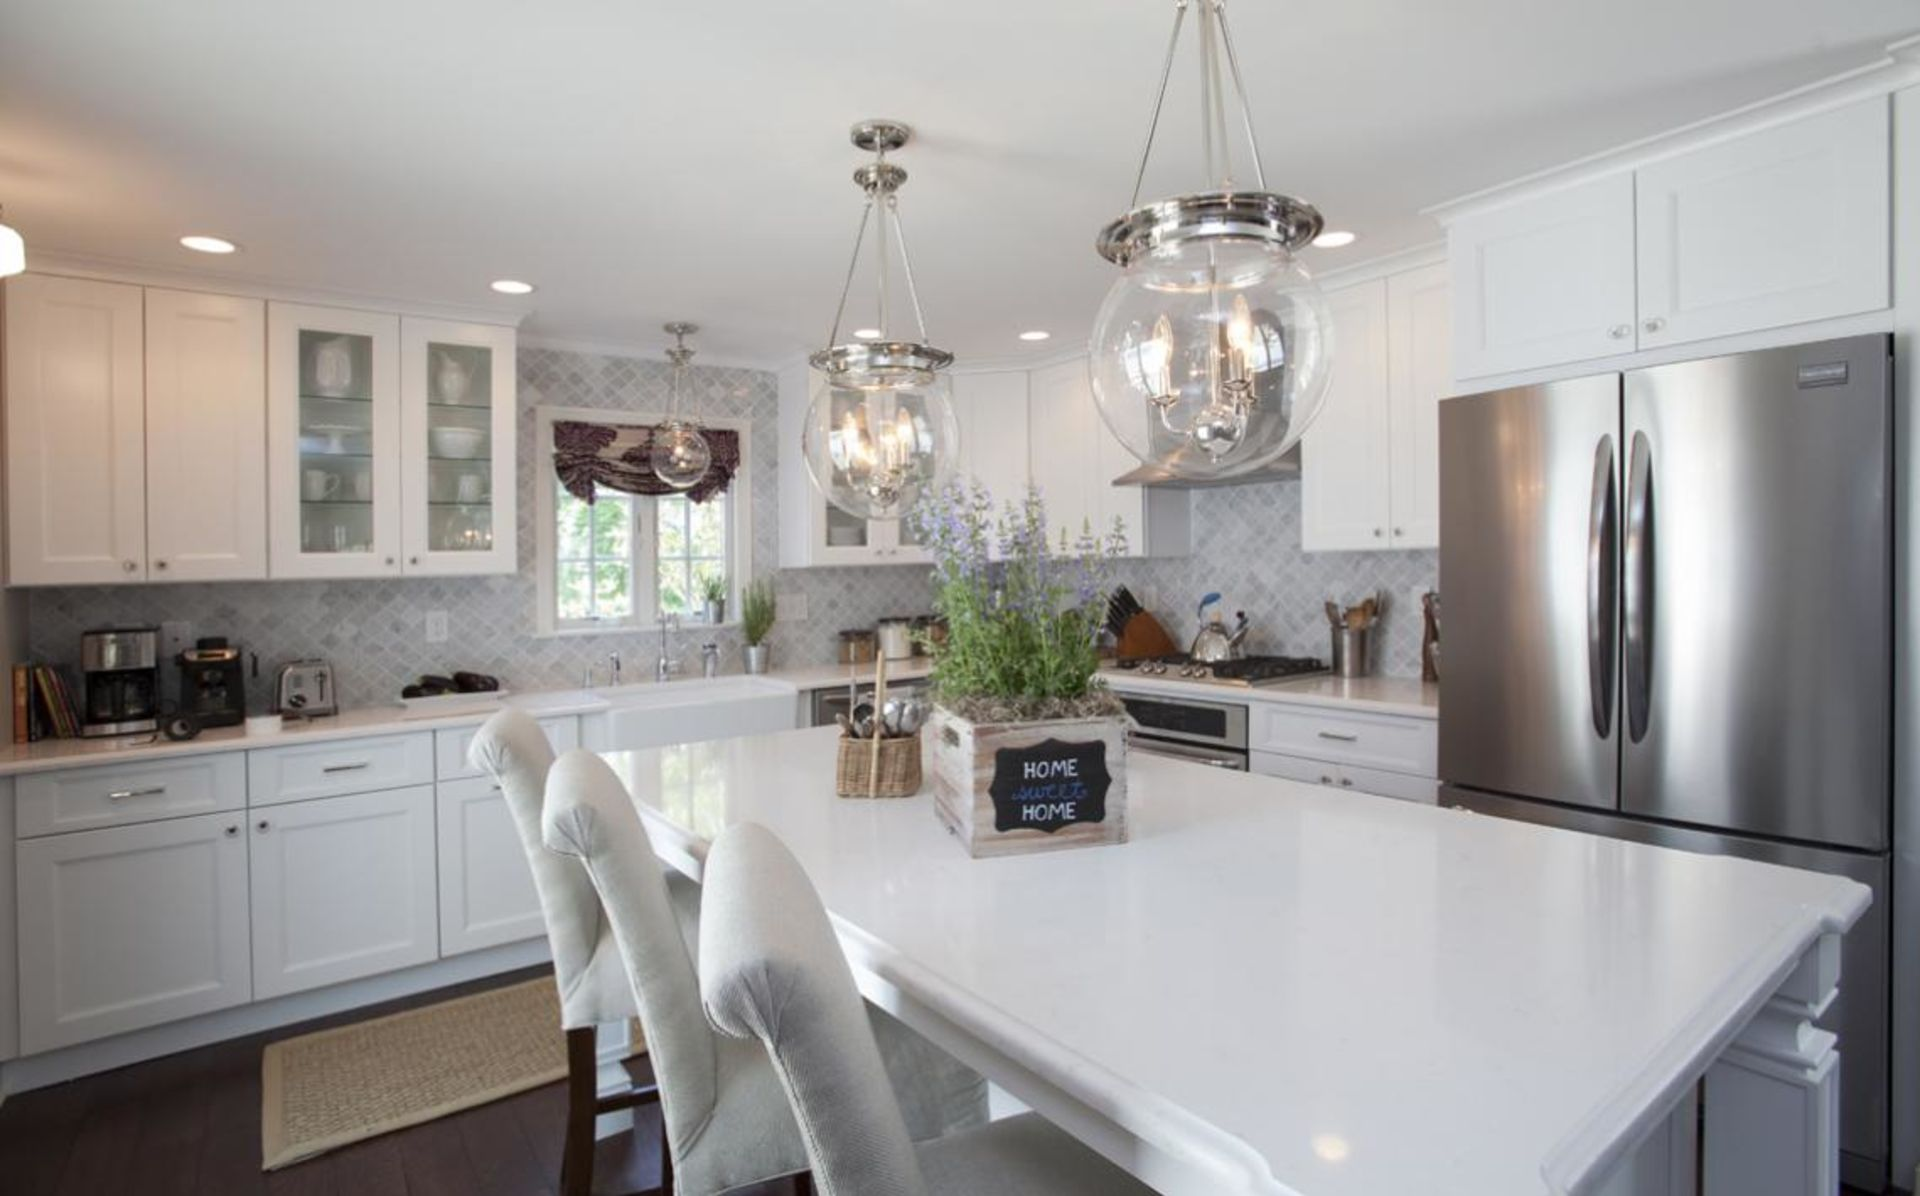 5 Questions to Ask Before a Kitchen Remodel